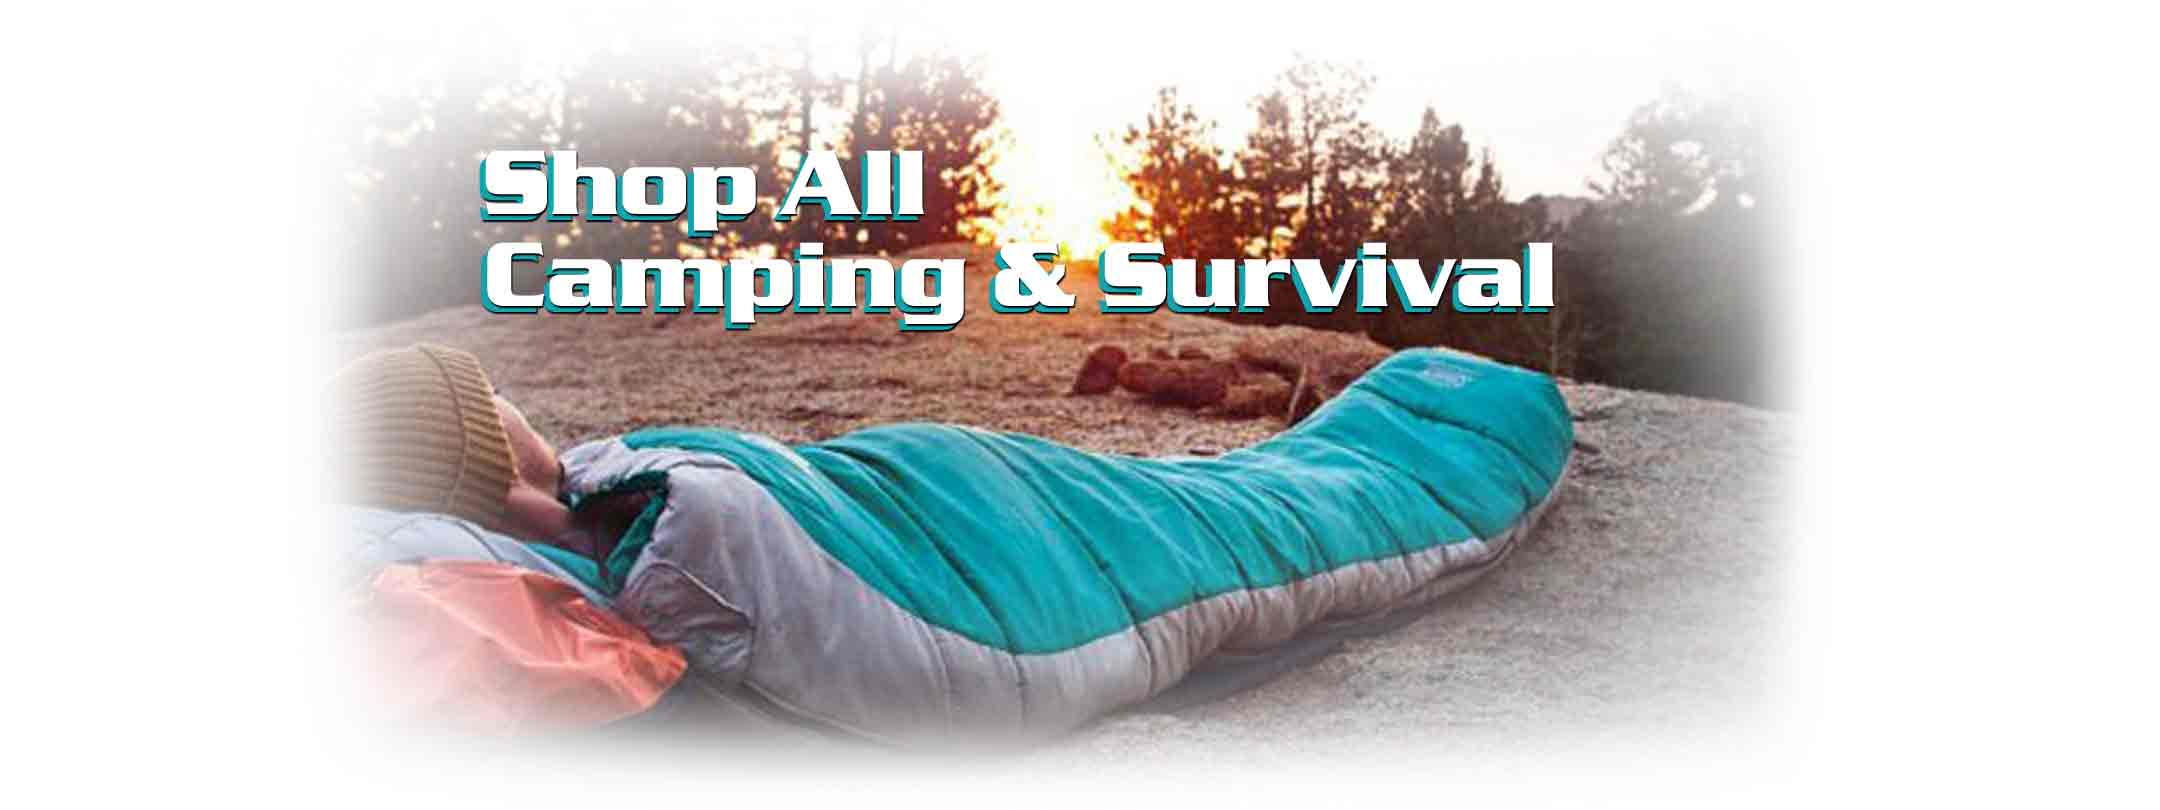 Camping & Survival